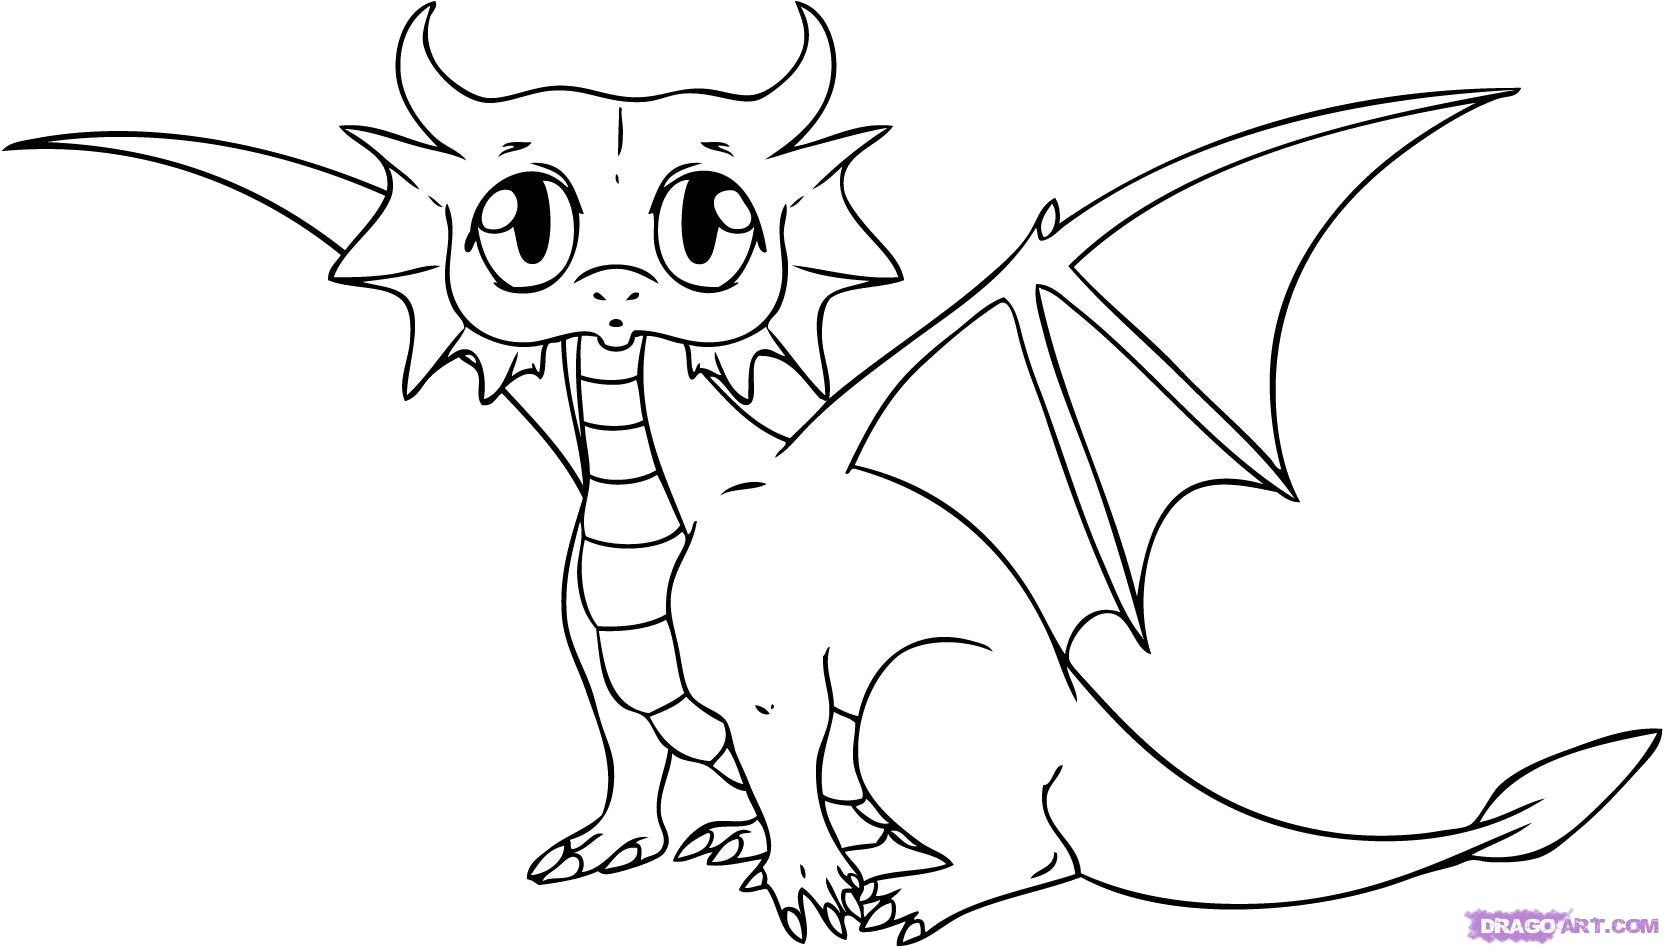 Cute Baby Dragon Coloring Pages For Kids Cga Printable Dragons Coloring Pages For Kids